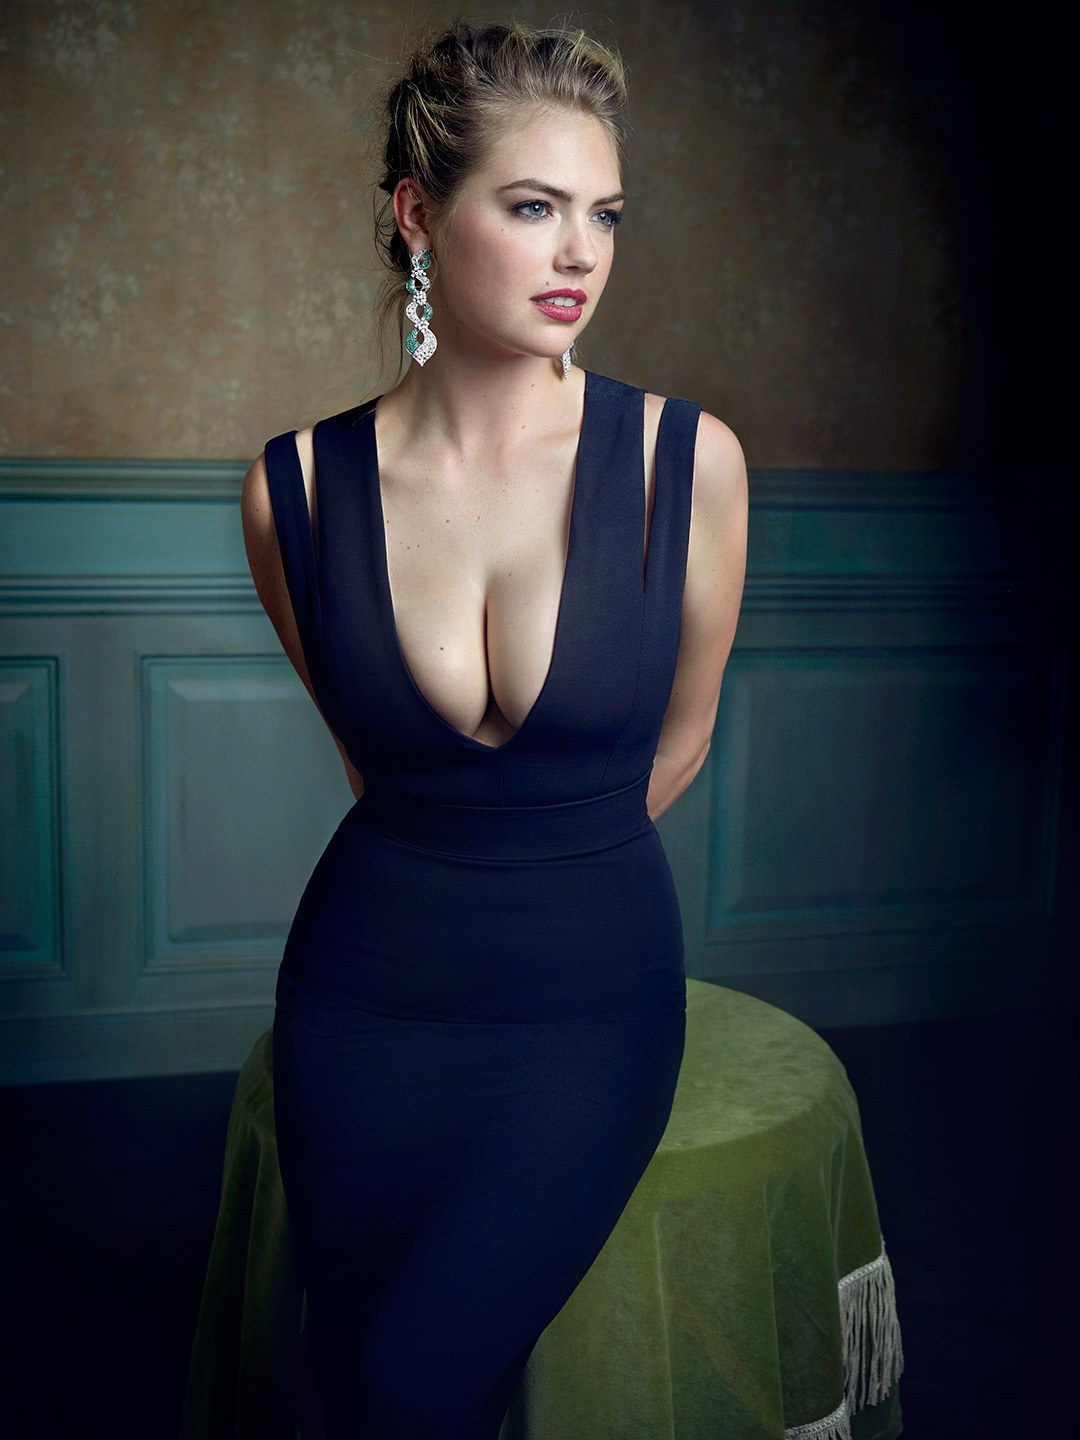 Kate-Upton-Cleavage